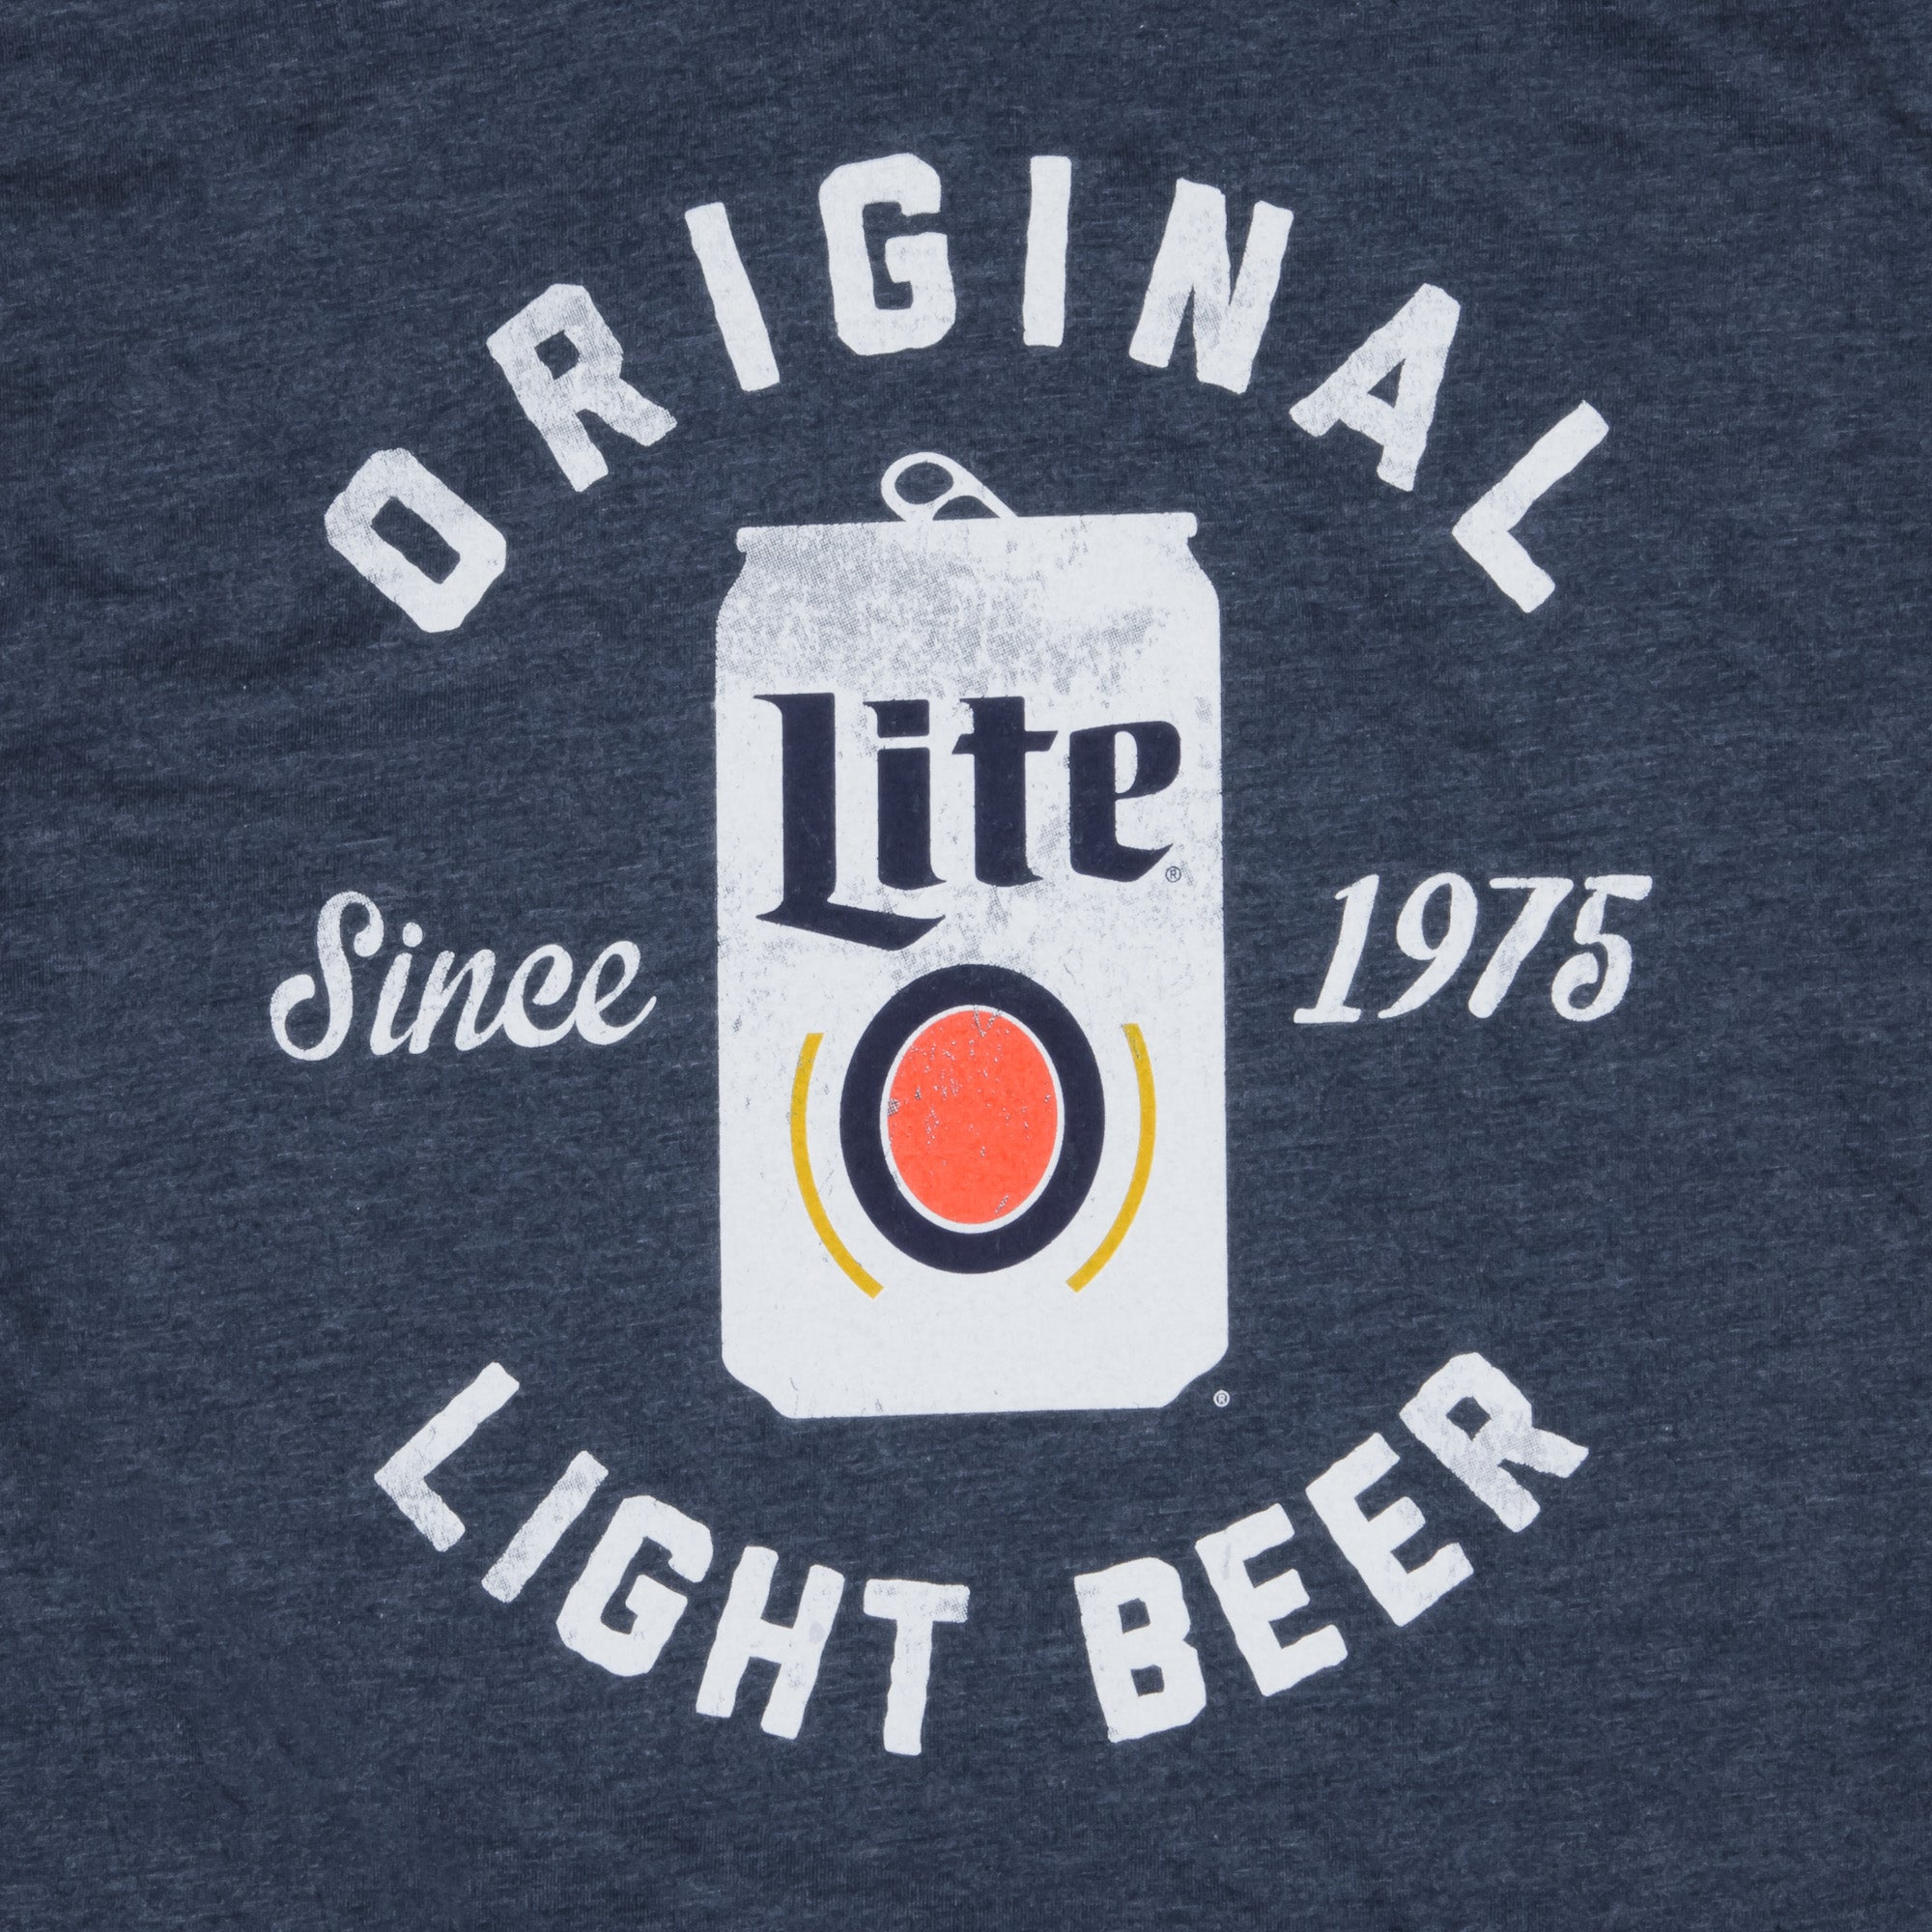 MILLER LITE ORIGINAL CAN UNISEX T-SHIRT